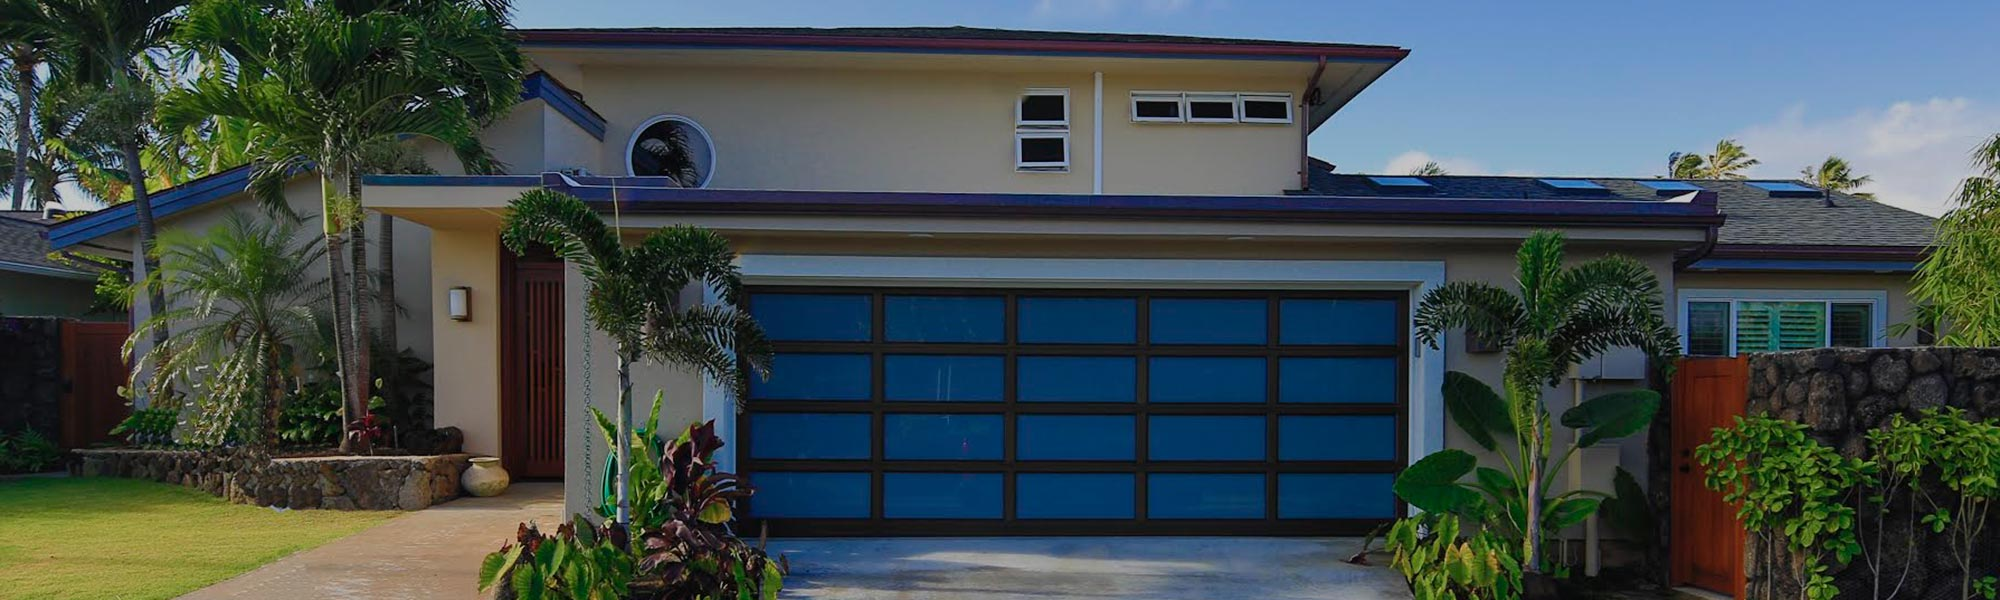 image ogf aluminum garage door on home by raynor hawaii overhead doors